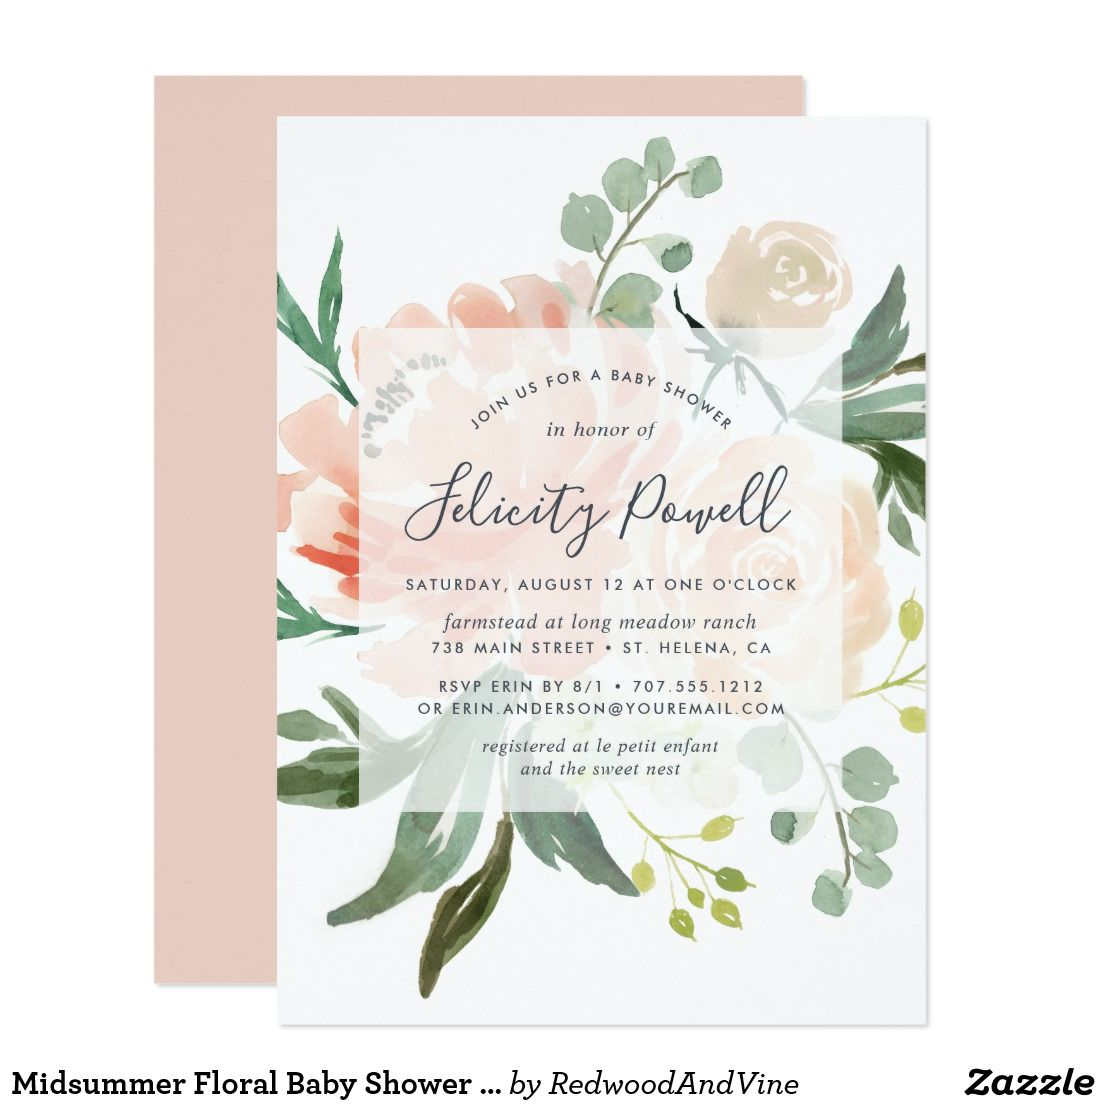 Midsummer Floral Baby Shower Invitation | Zazzle.com (With images) | Floral  wedding invitations, Floral bridal shower invitations, Floral wedding